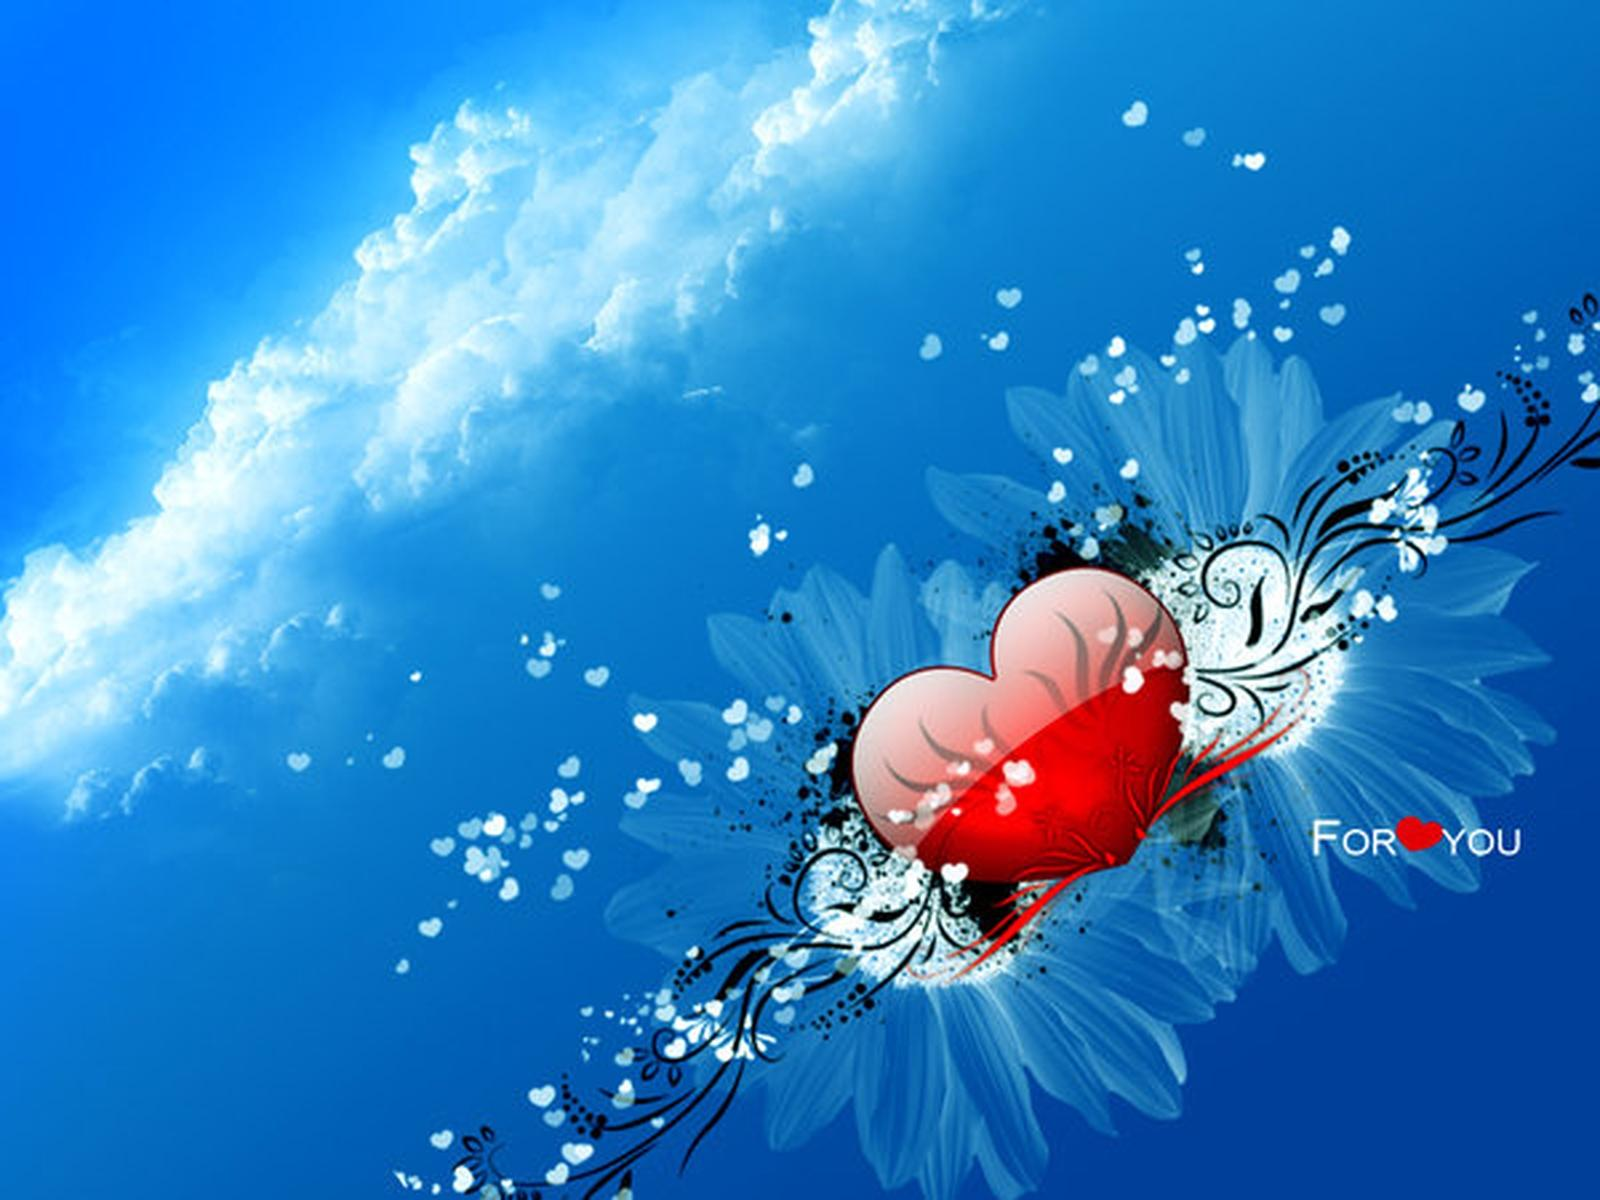 Images Of Love Hd Wallpaper : Desktop Wallpapers,Animals Wallpapers,Flowers Wallpapers, Birds Wallpapers ,Sad Poetry ...